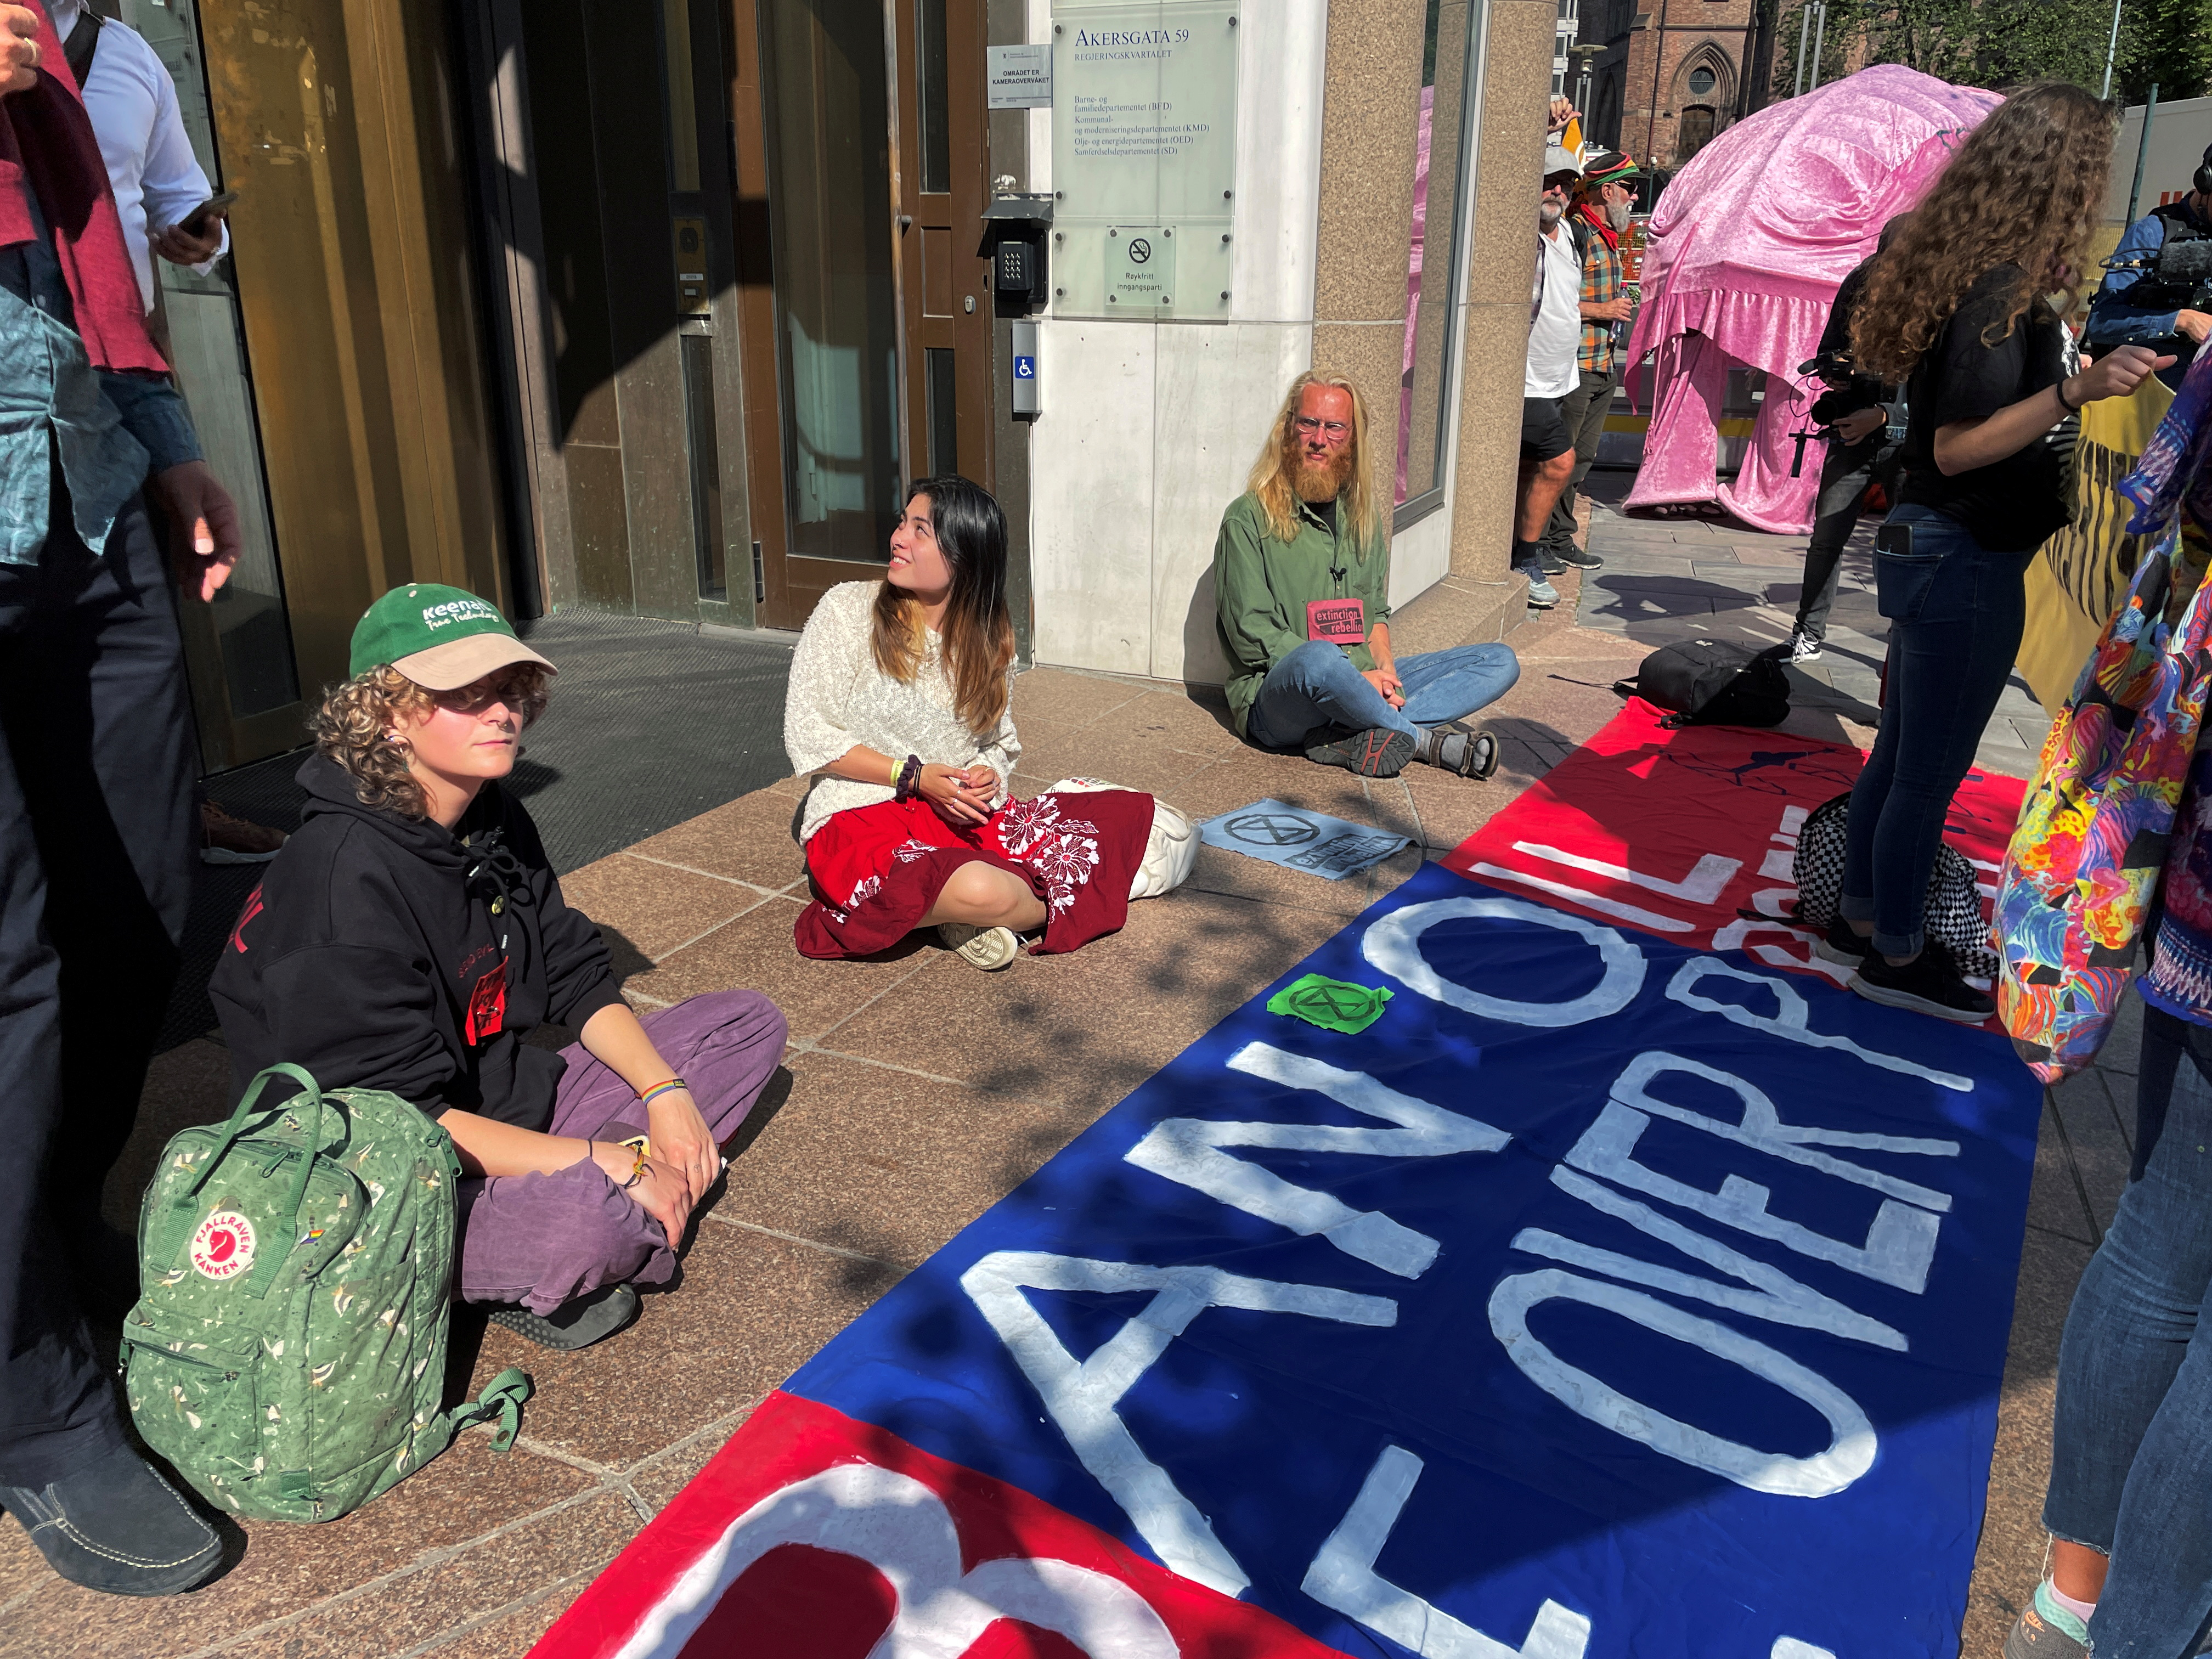 Extinction Rebellion protesters demonstrate at the Norwegian oil and energy ministry in Oslo, Norway August 23, 2021. REUTERS/Gwladys Fouche